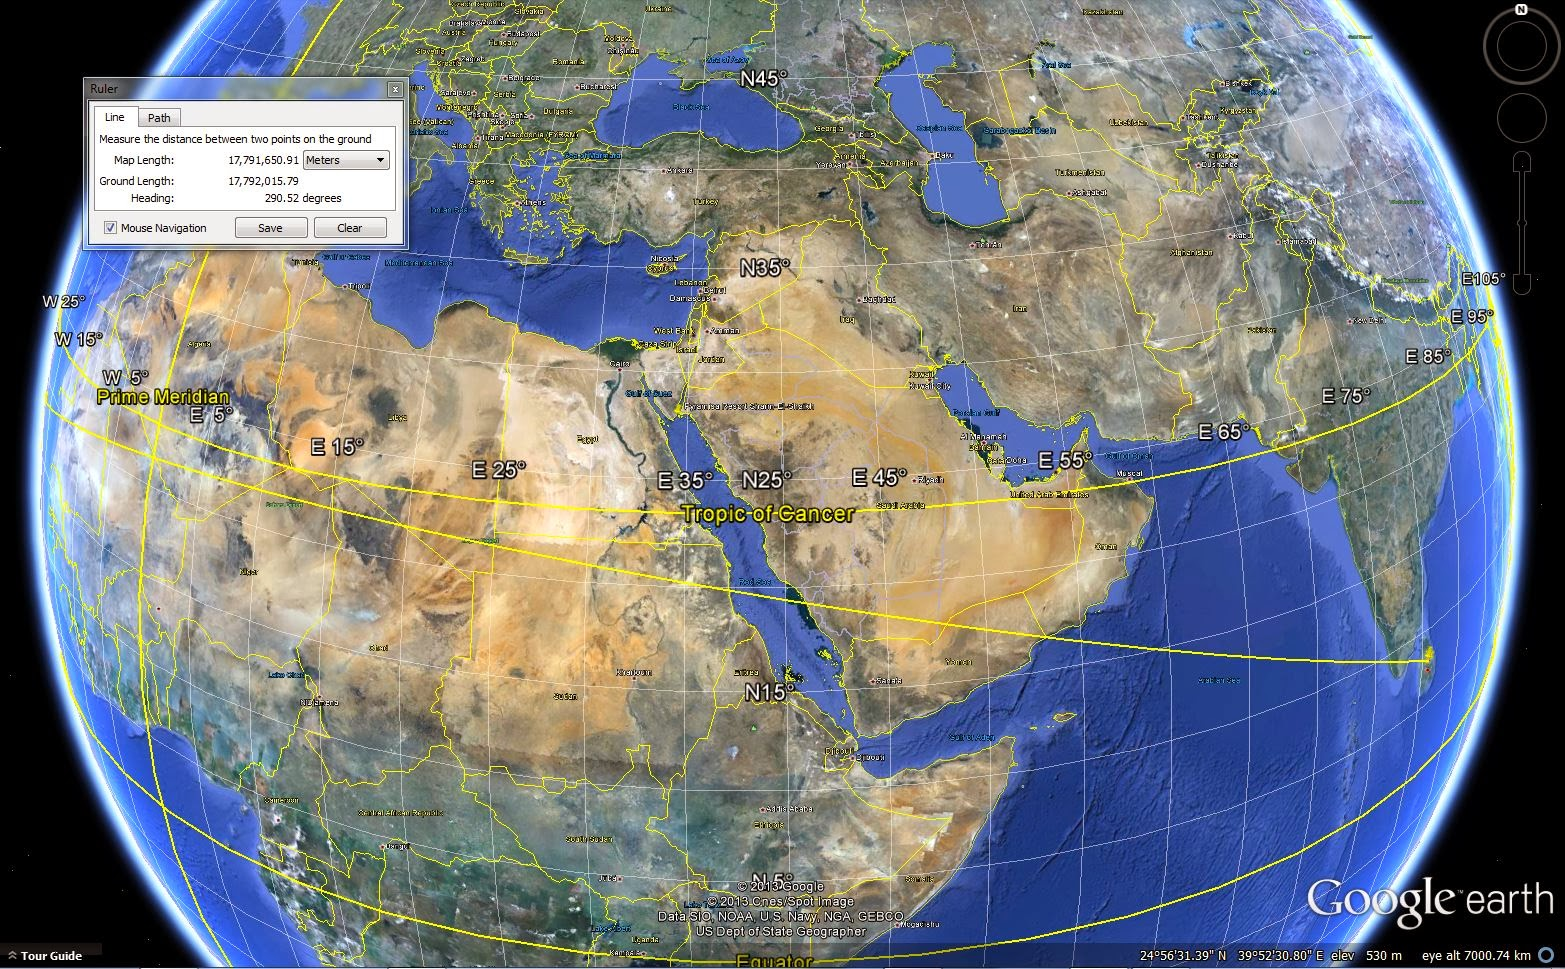 Google Earth screenshot , view from space, Sri Lanka, India, Arabian Peninsula, Africa, alternative history, riddles